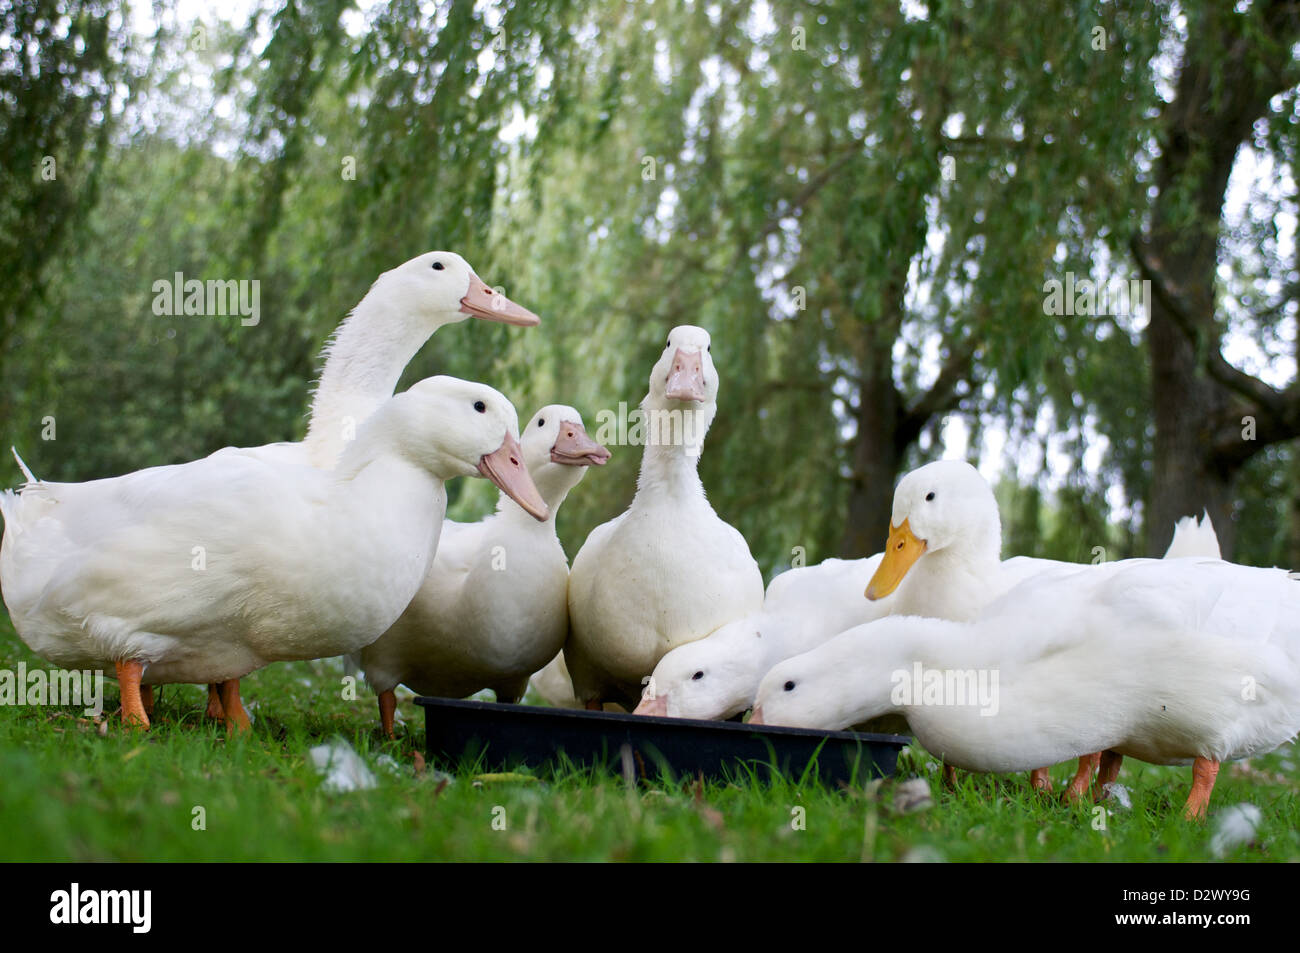 Seven ducks feeding one sticks its tongue out  - Stock Image